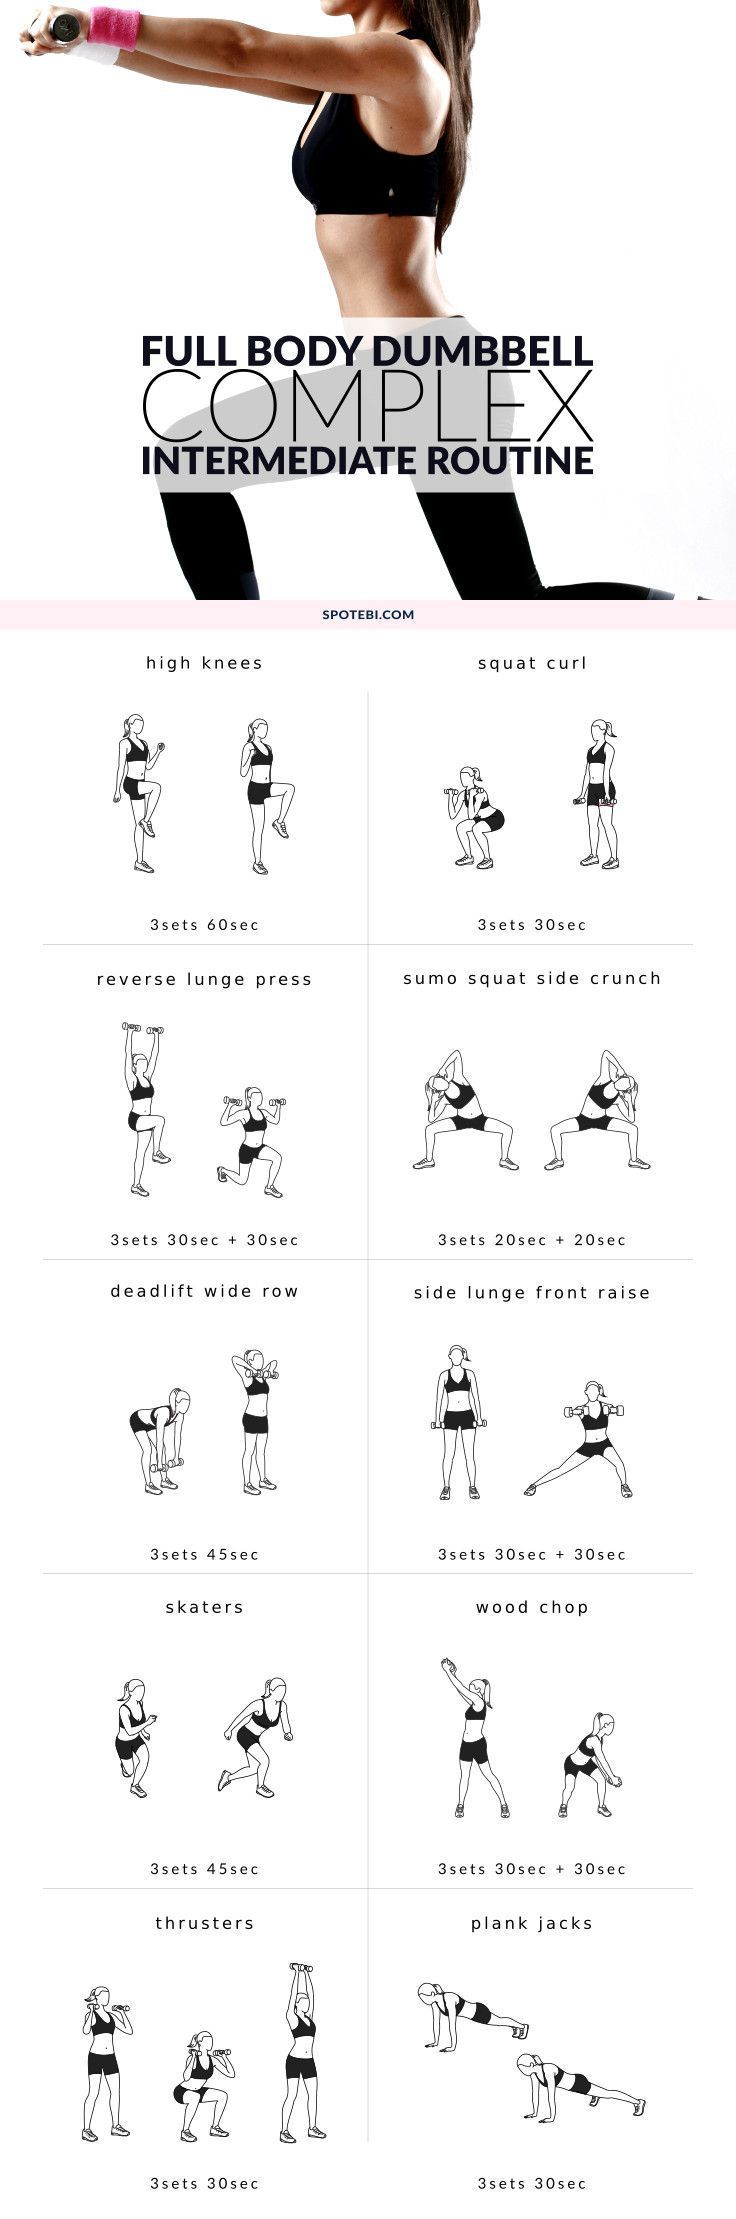 Maximize weight loss and jump start your metabolism with this full body intermediate dumbbell complex. Complexes are simply a series of full body exercises done back to back using weights, that can help you burn fat and speed up your metabolism during exe